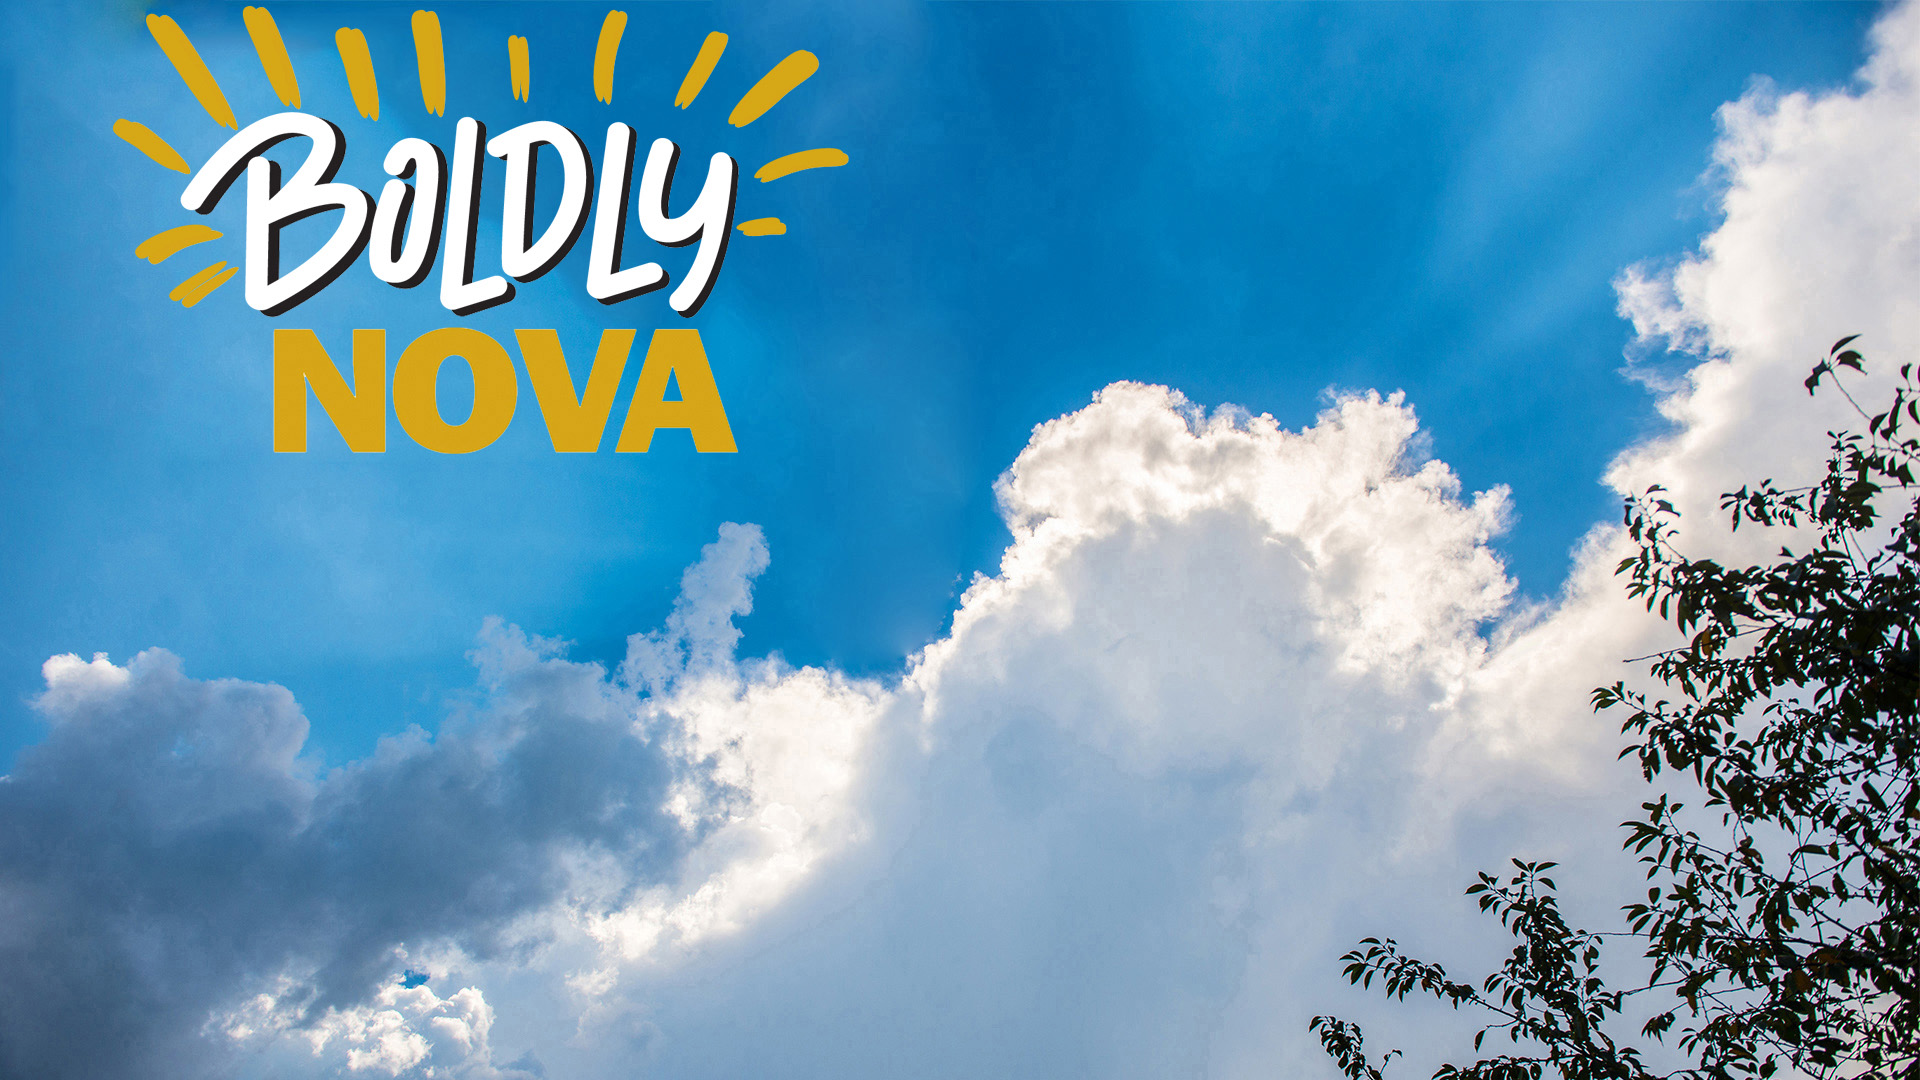 Boldly NOVA - Northern Virginia Community College